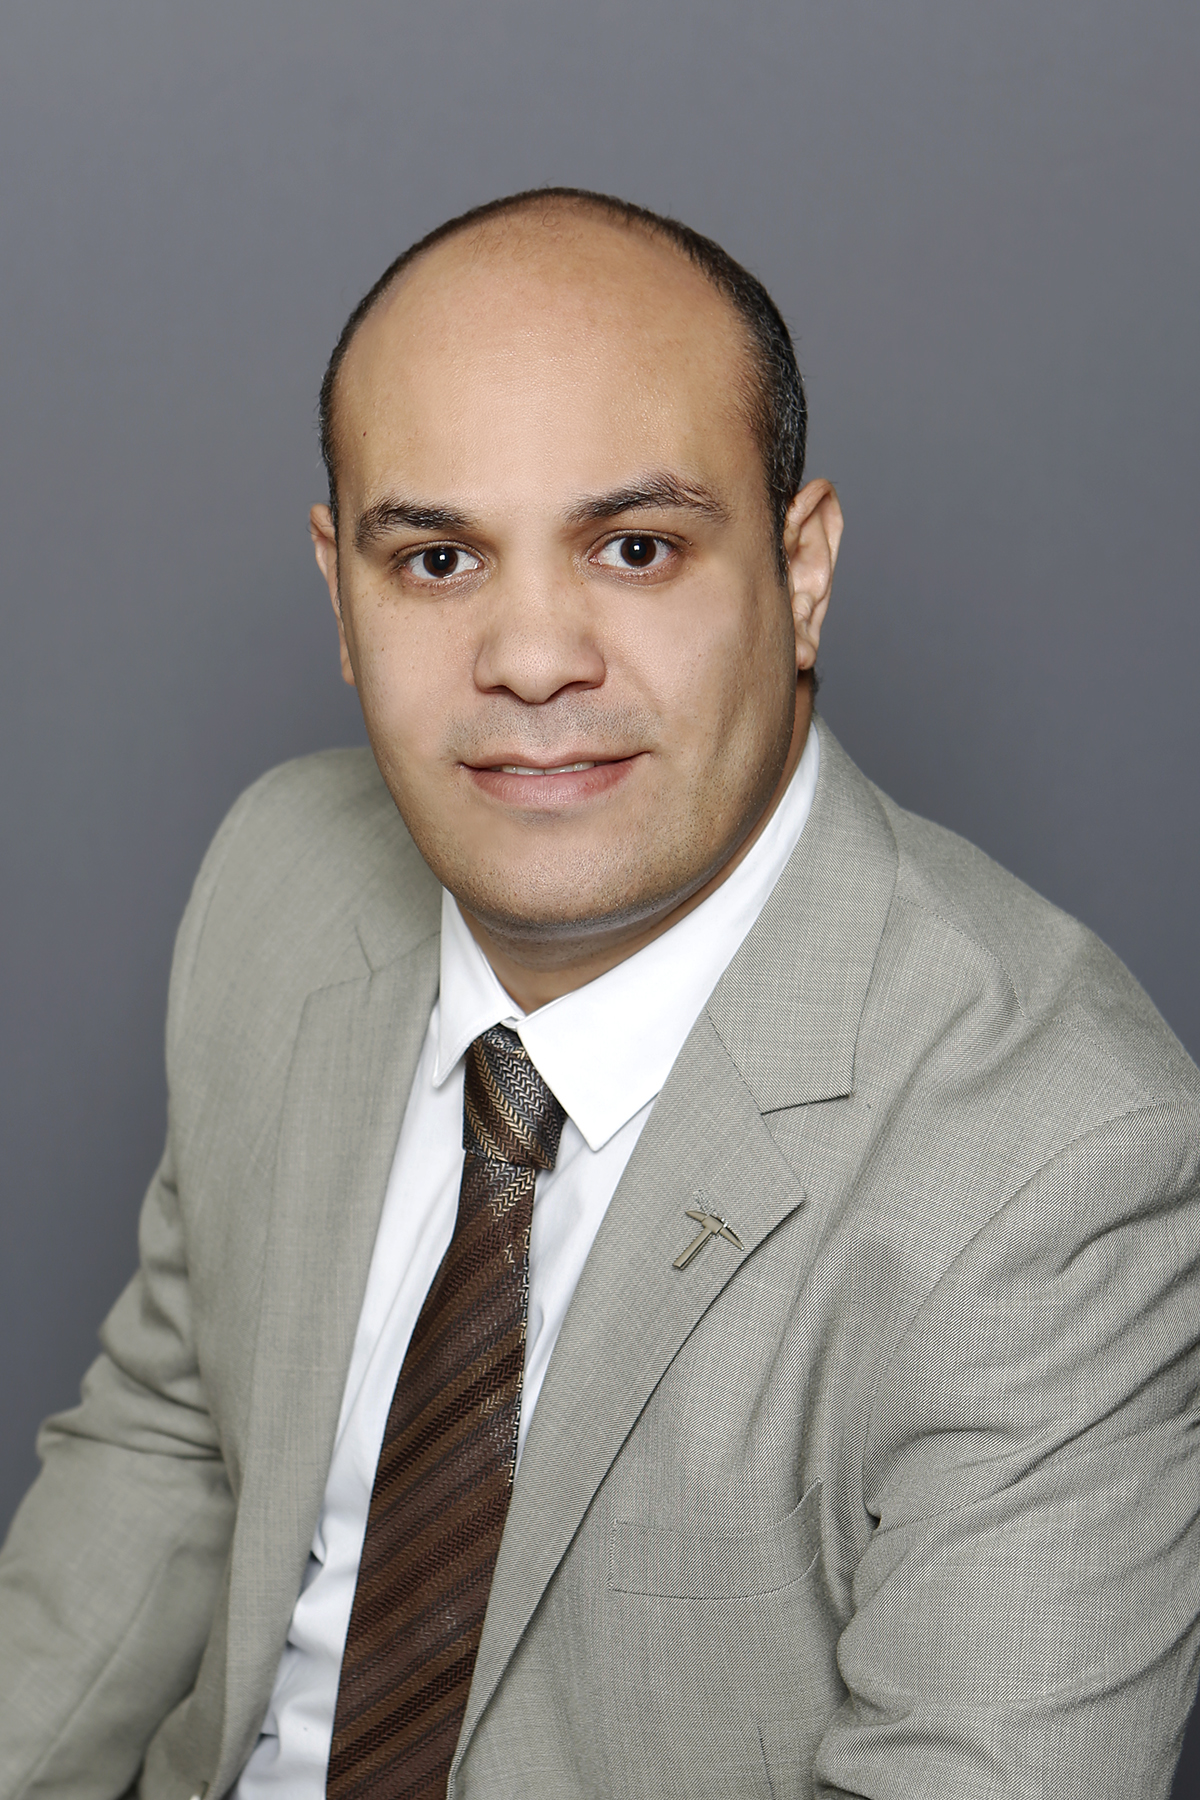 Ahmed A. El-Gendy